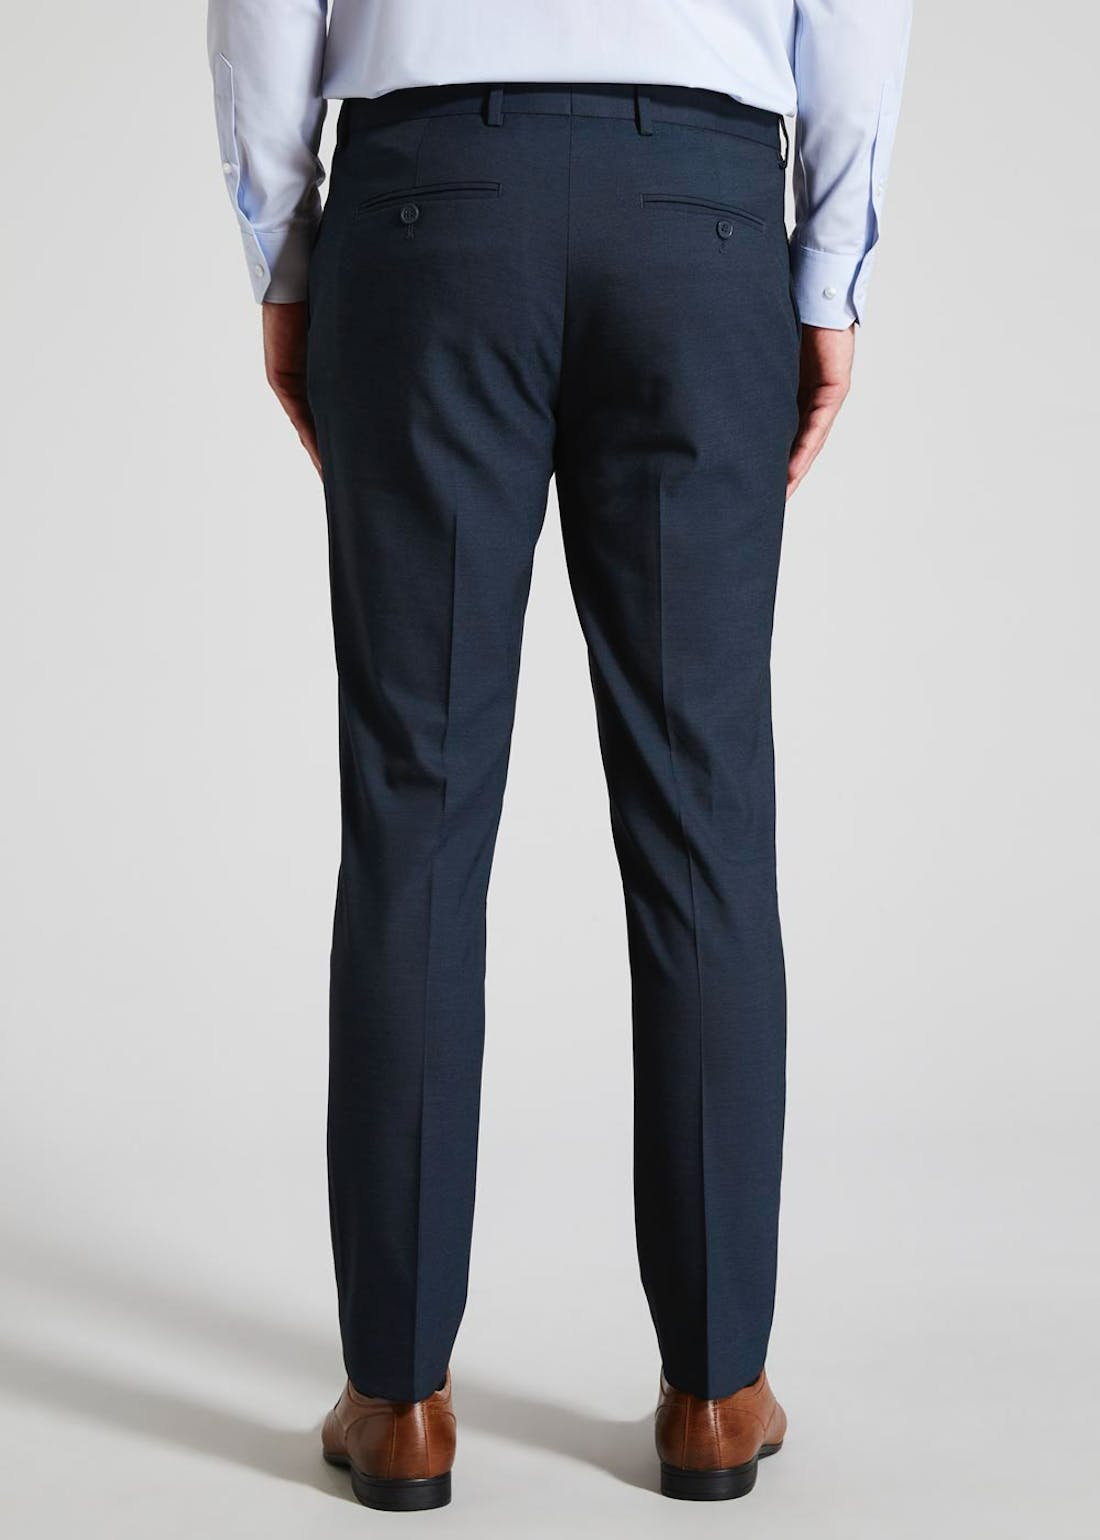 Bond Skinny Textured Trousers